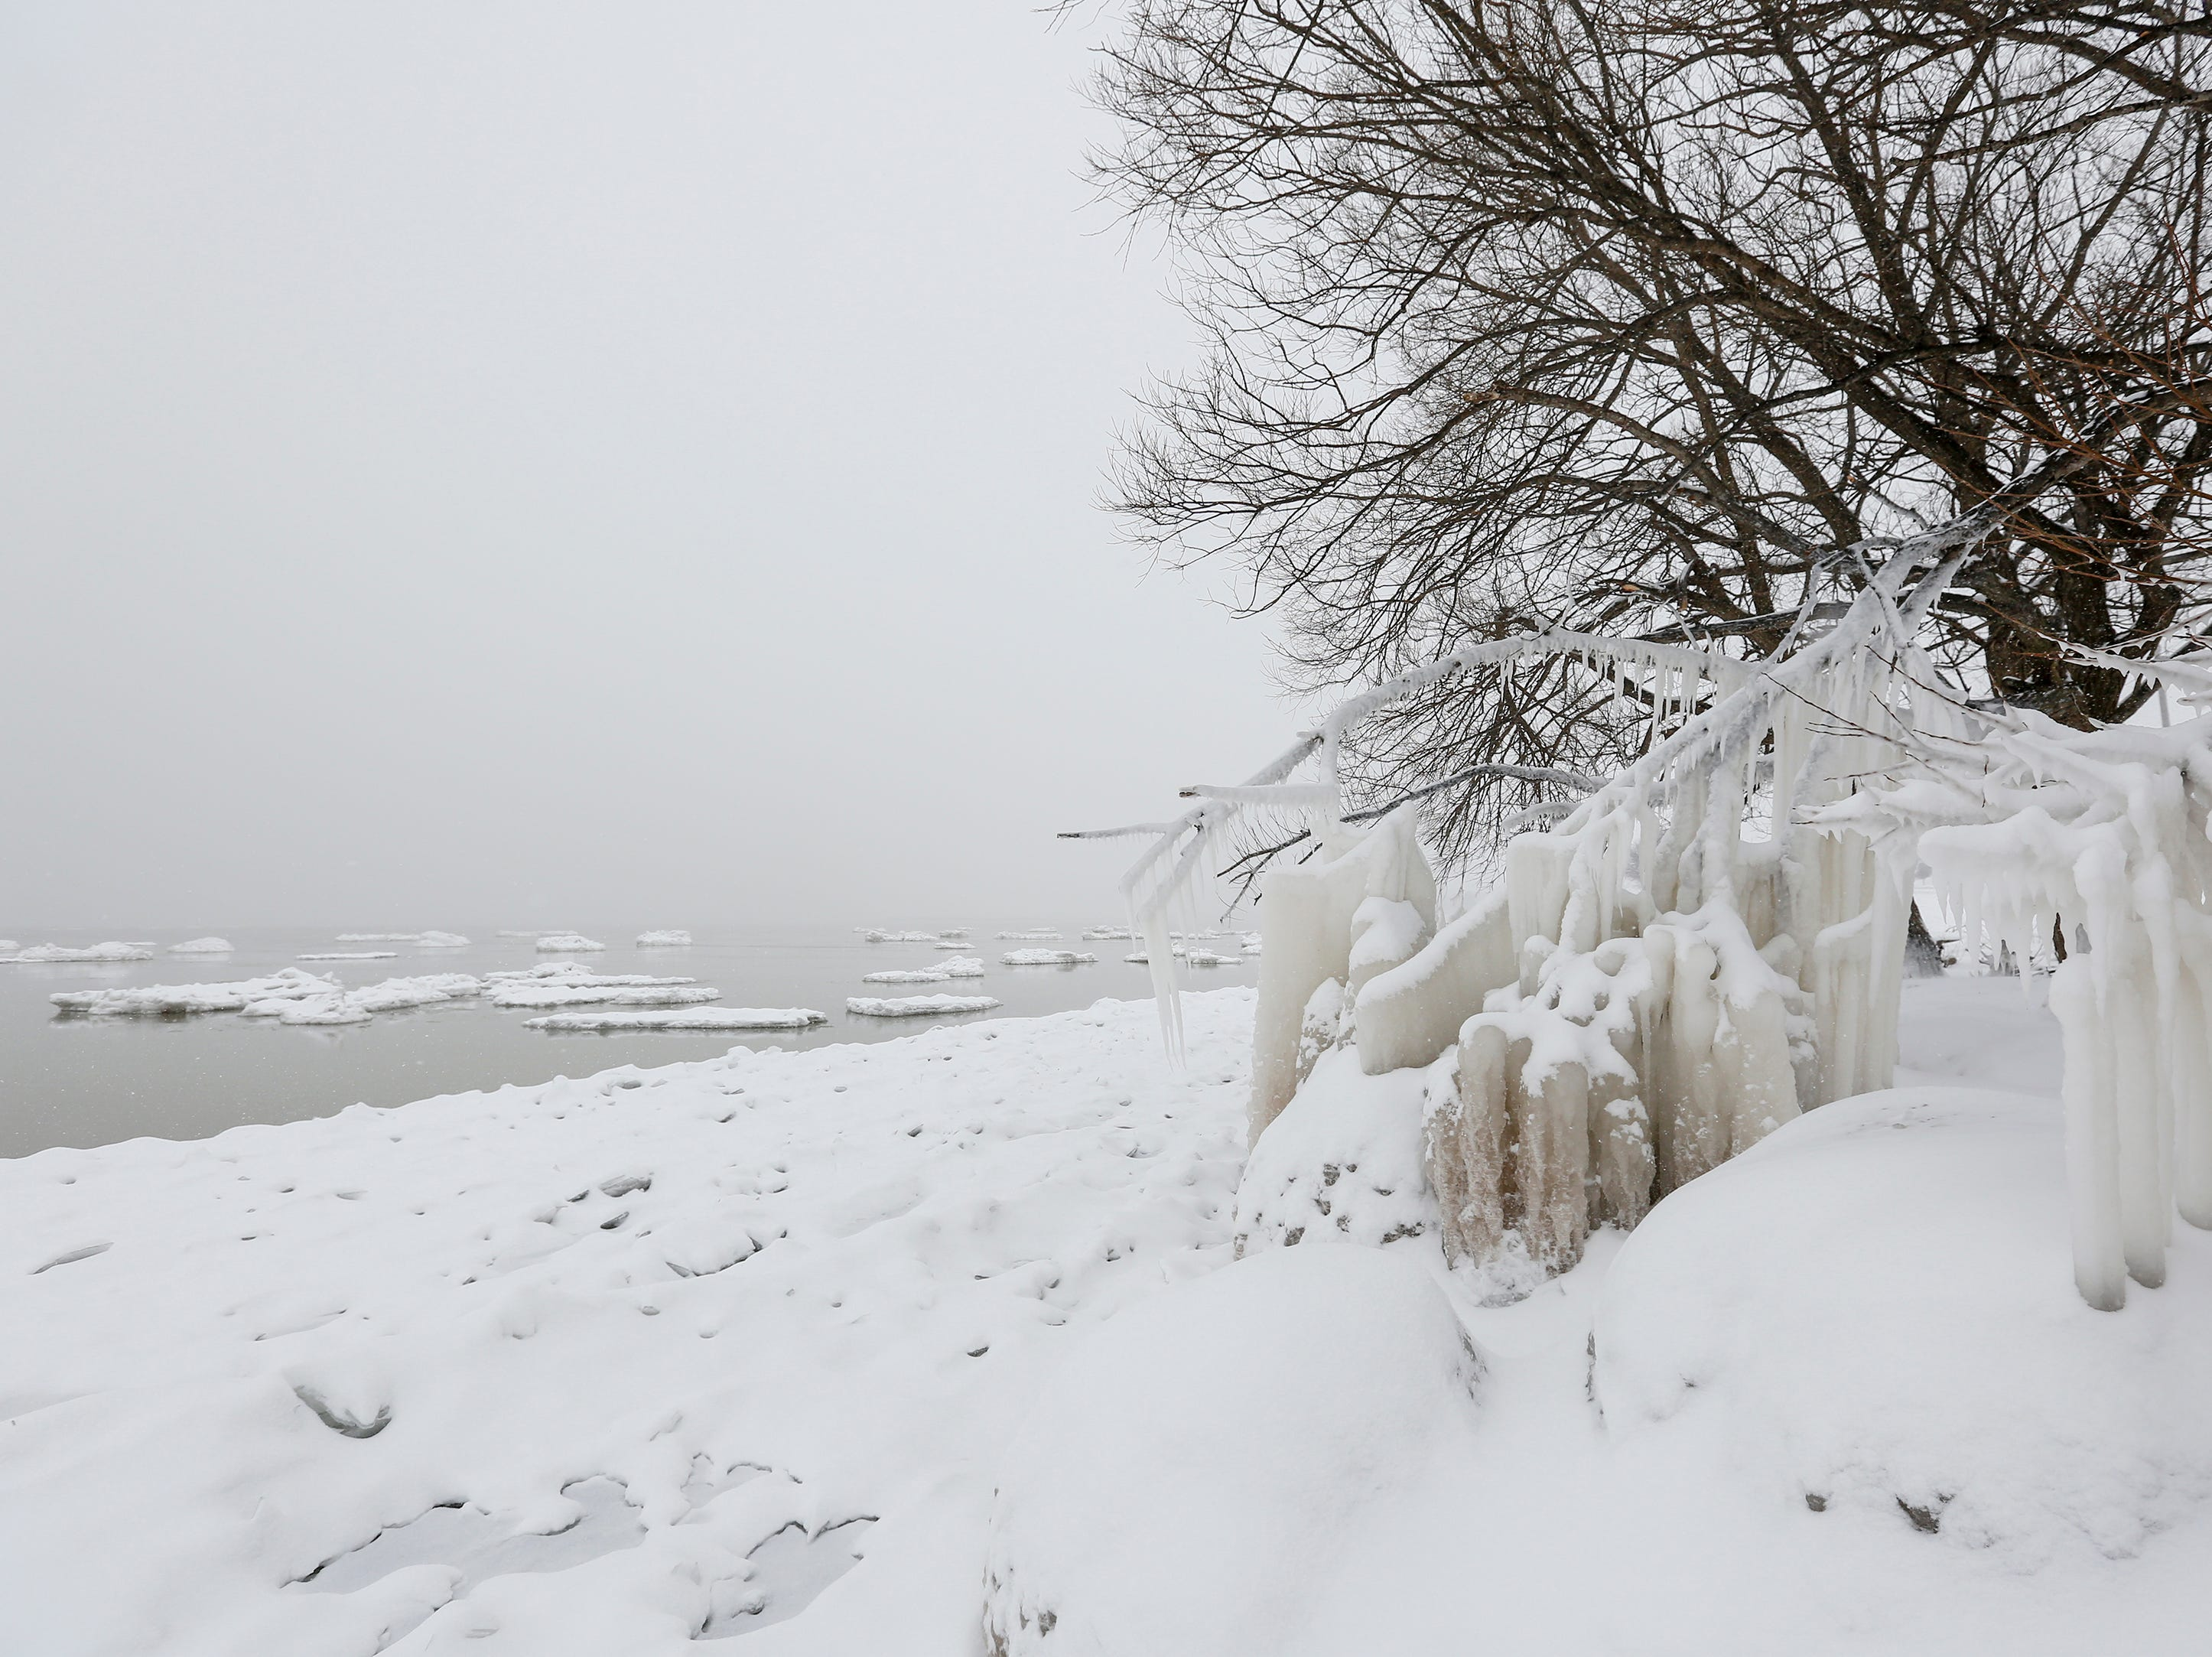 Icicles hang from a tree along Lake Michigan during a snowstorm Wednesday, January 23, 2019, in Manitowoc, Wis. Joshua Clark/USA TODAY NETWORK-Wisconsin